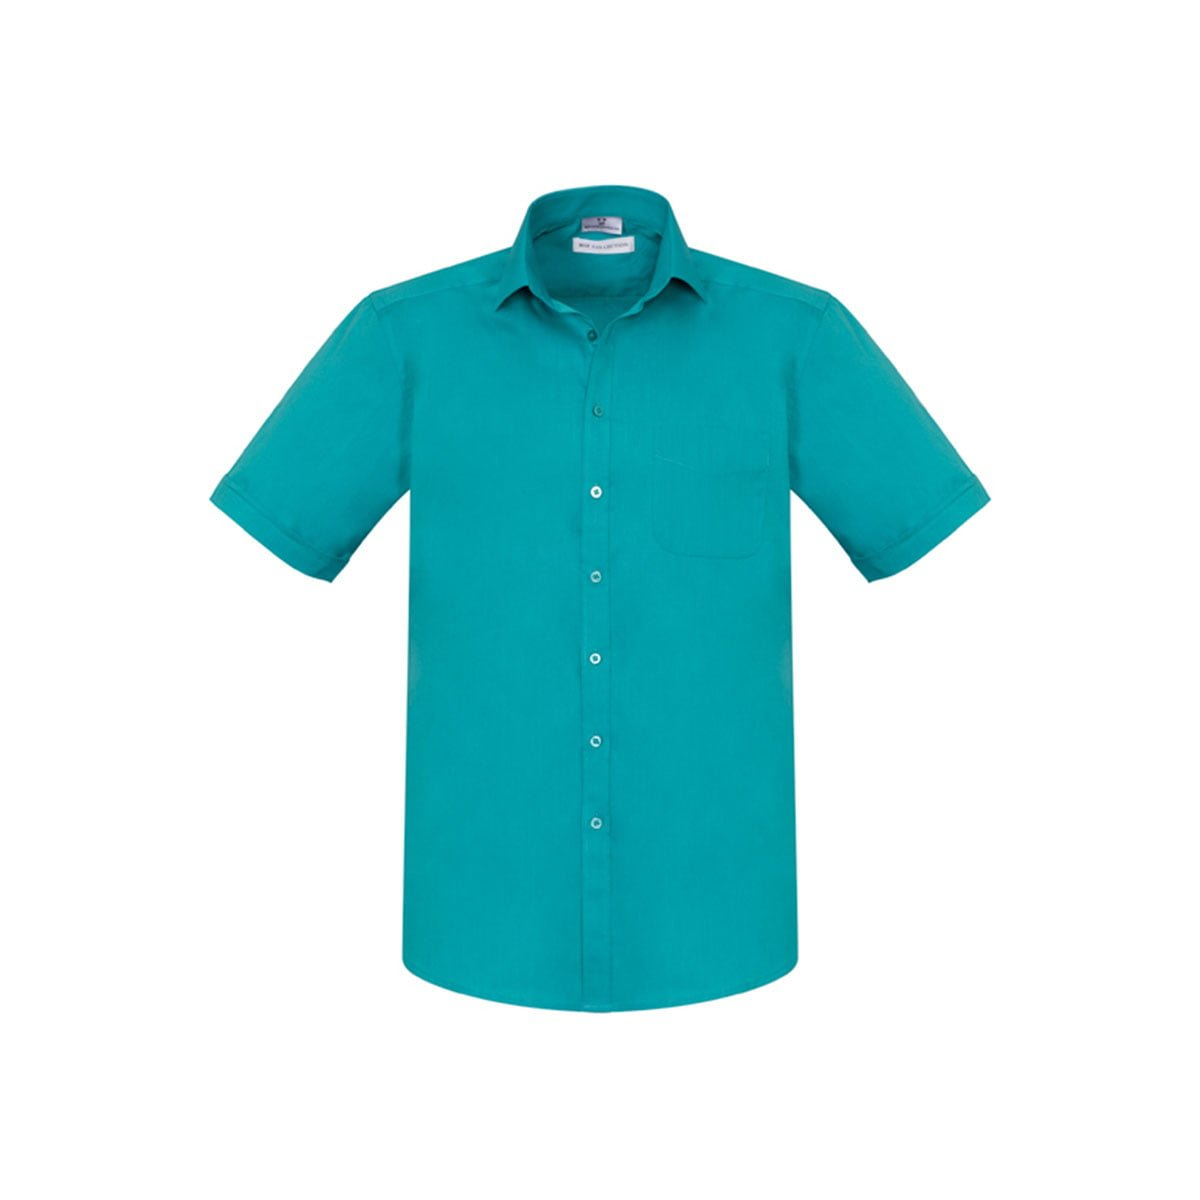 Mens Monaco Short Sleeve Shirt-Teal